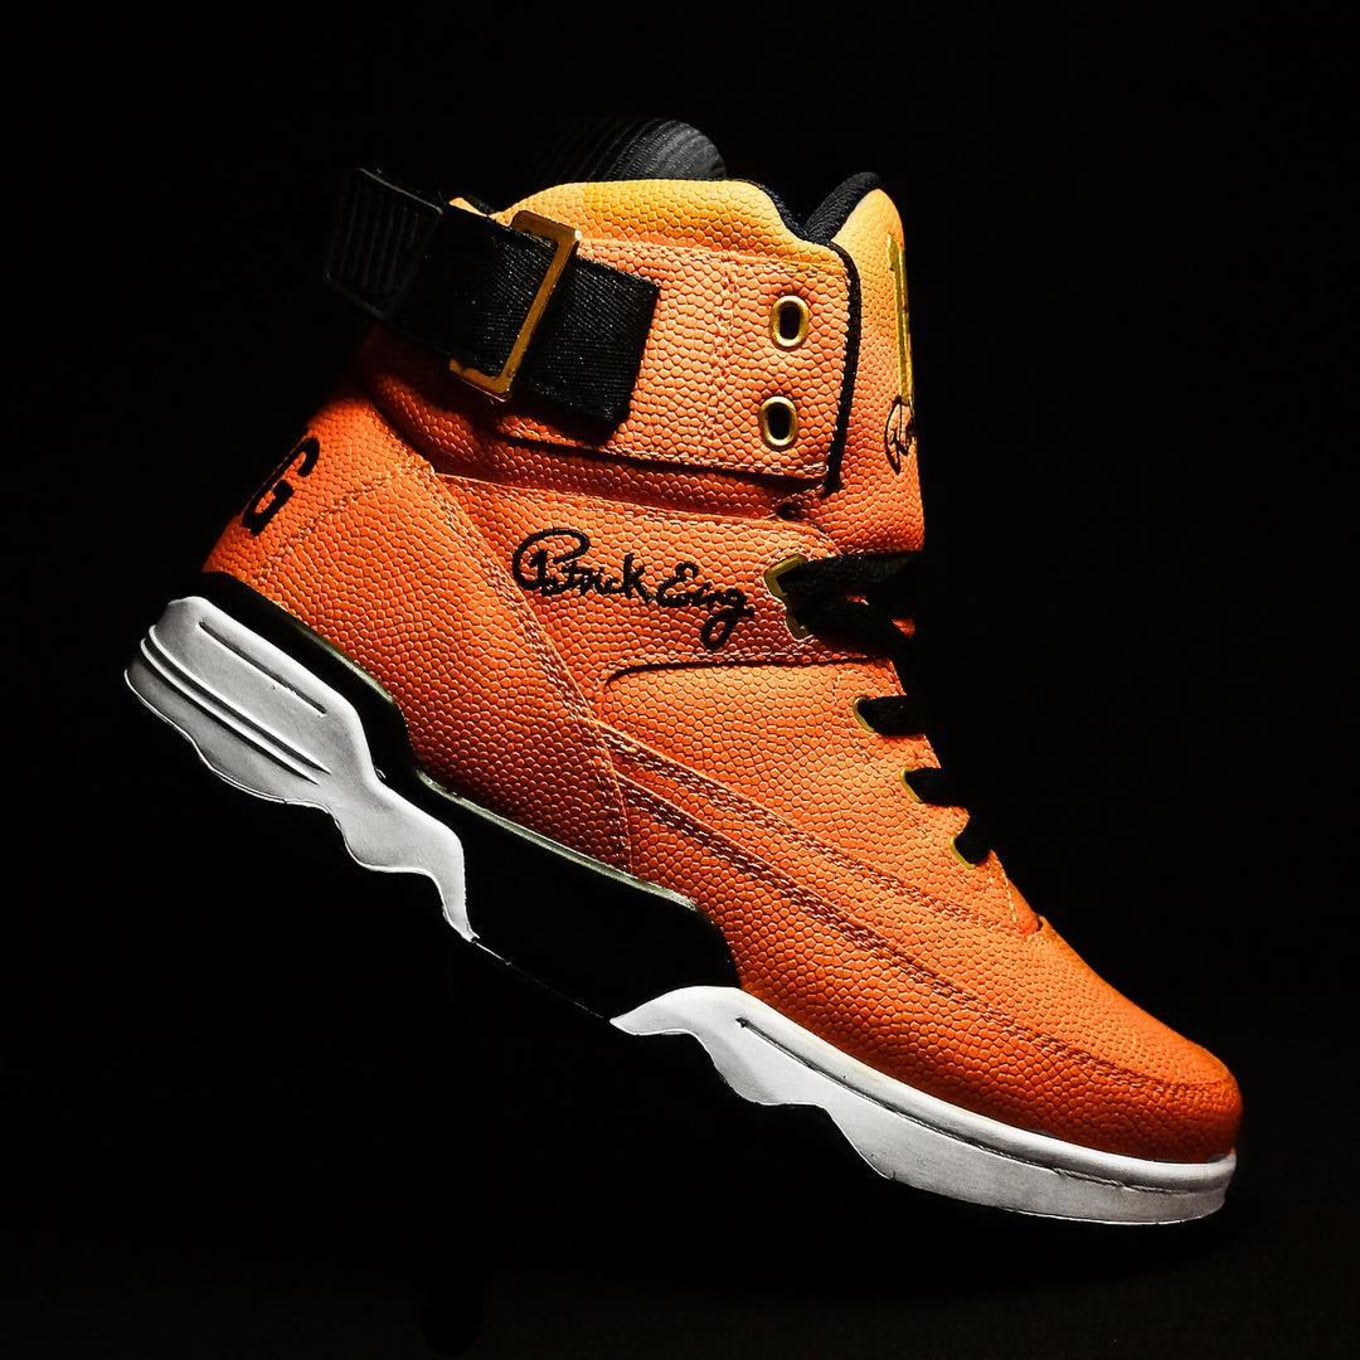 half off 9daf5 69588 Ewing 33 Hi Basketball Rookie of the Year